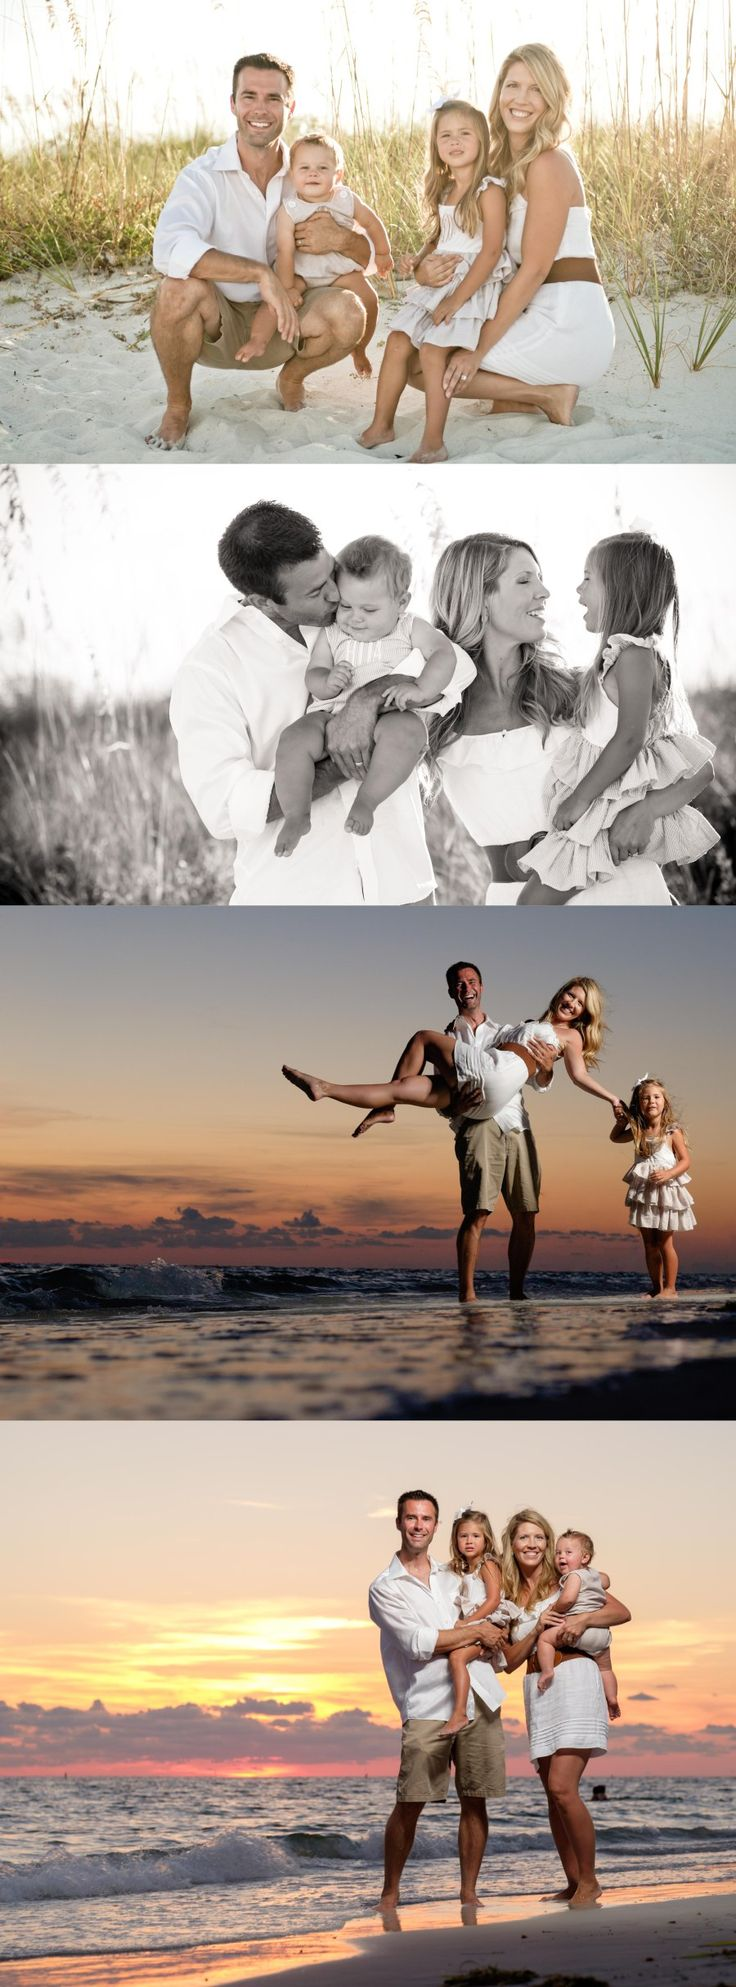 What to Wear: Whites and Tans. Florida Beach Family Portraits by Treasure Island St Pete Beach Photographer Kristen Sloan